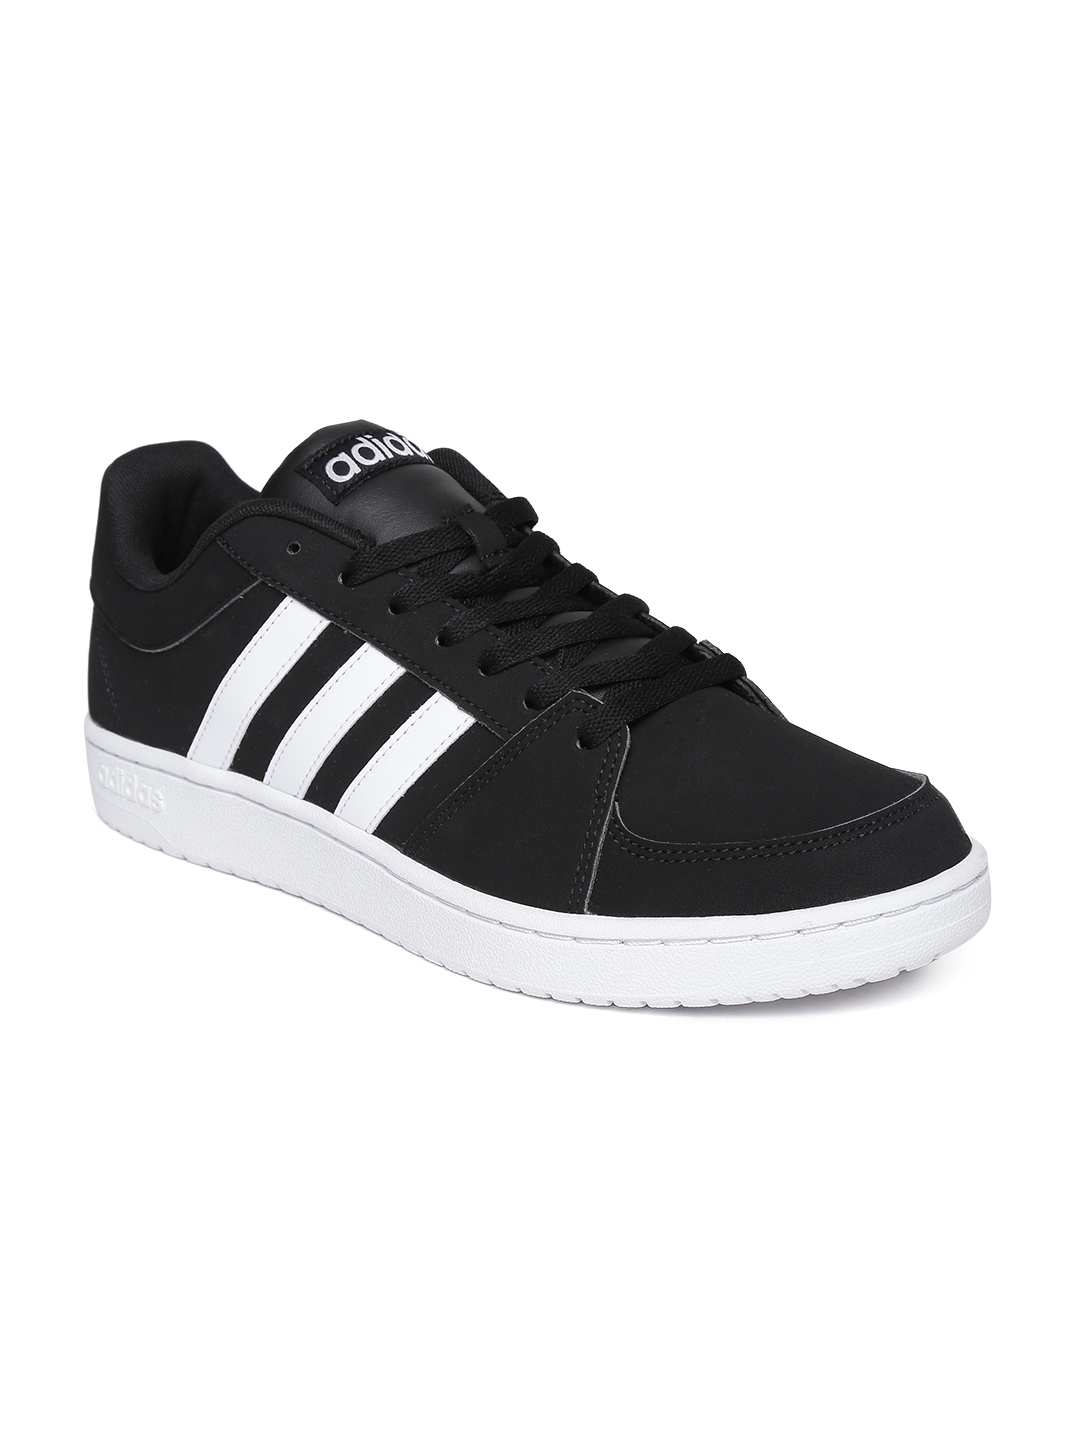 Adidas NEO Men Black VS Hoops Sneakers